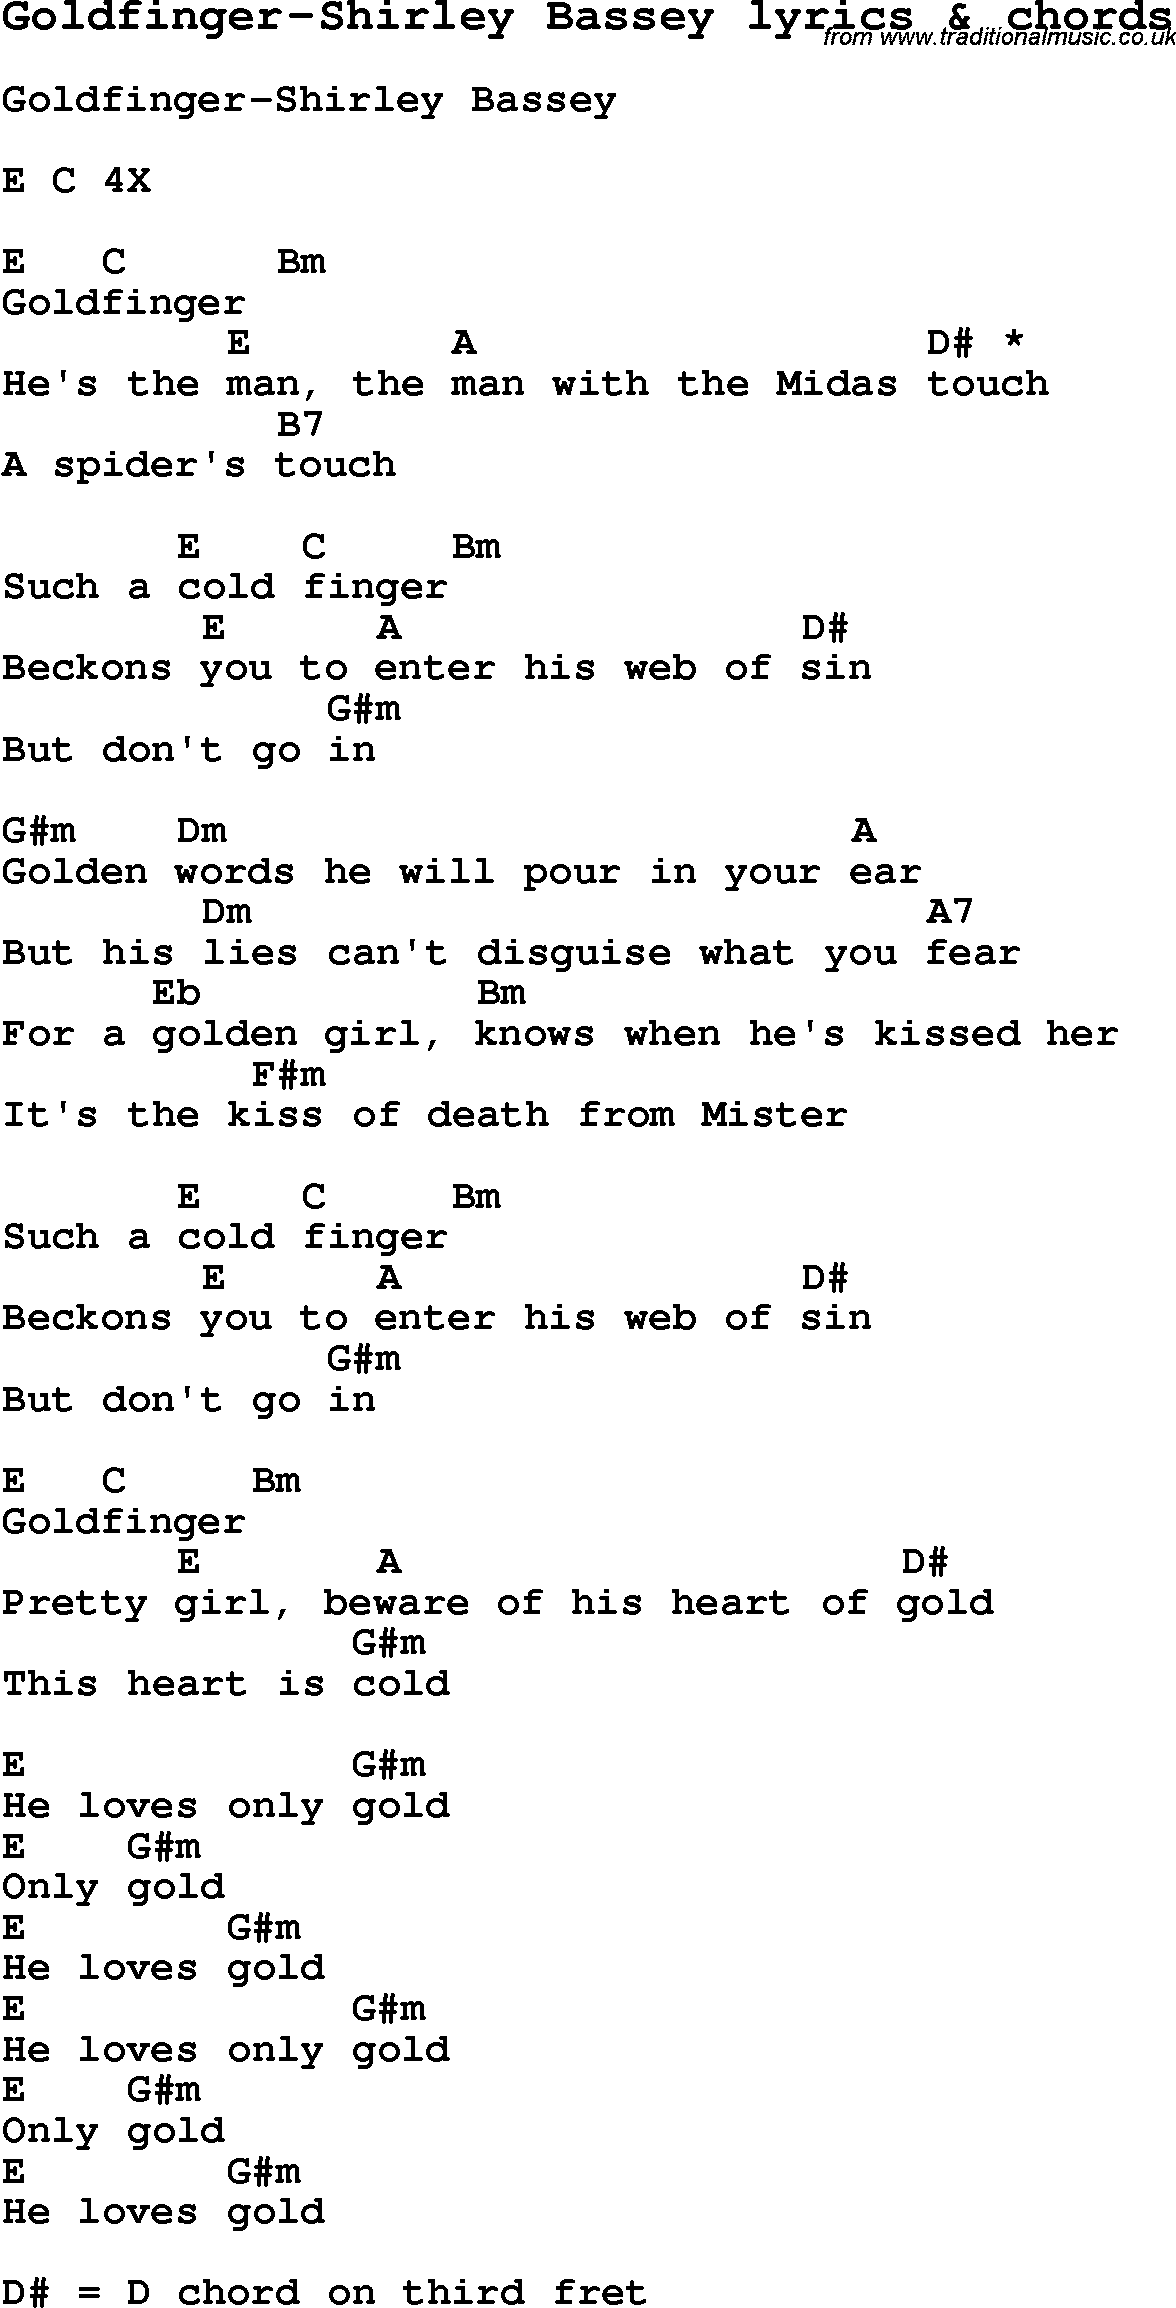 goldfinger lyrics shirley bassey: